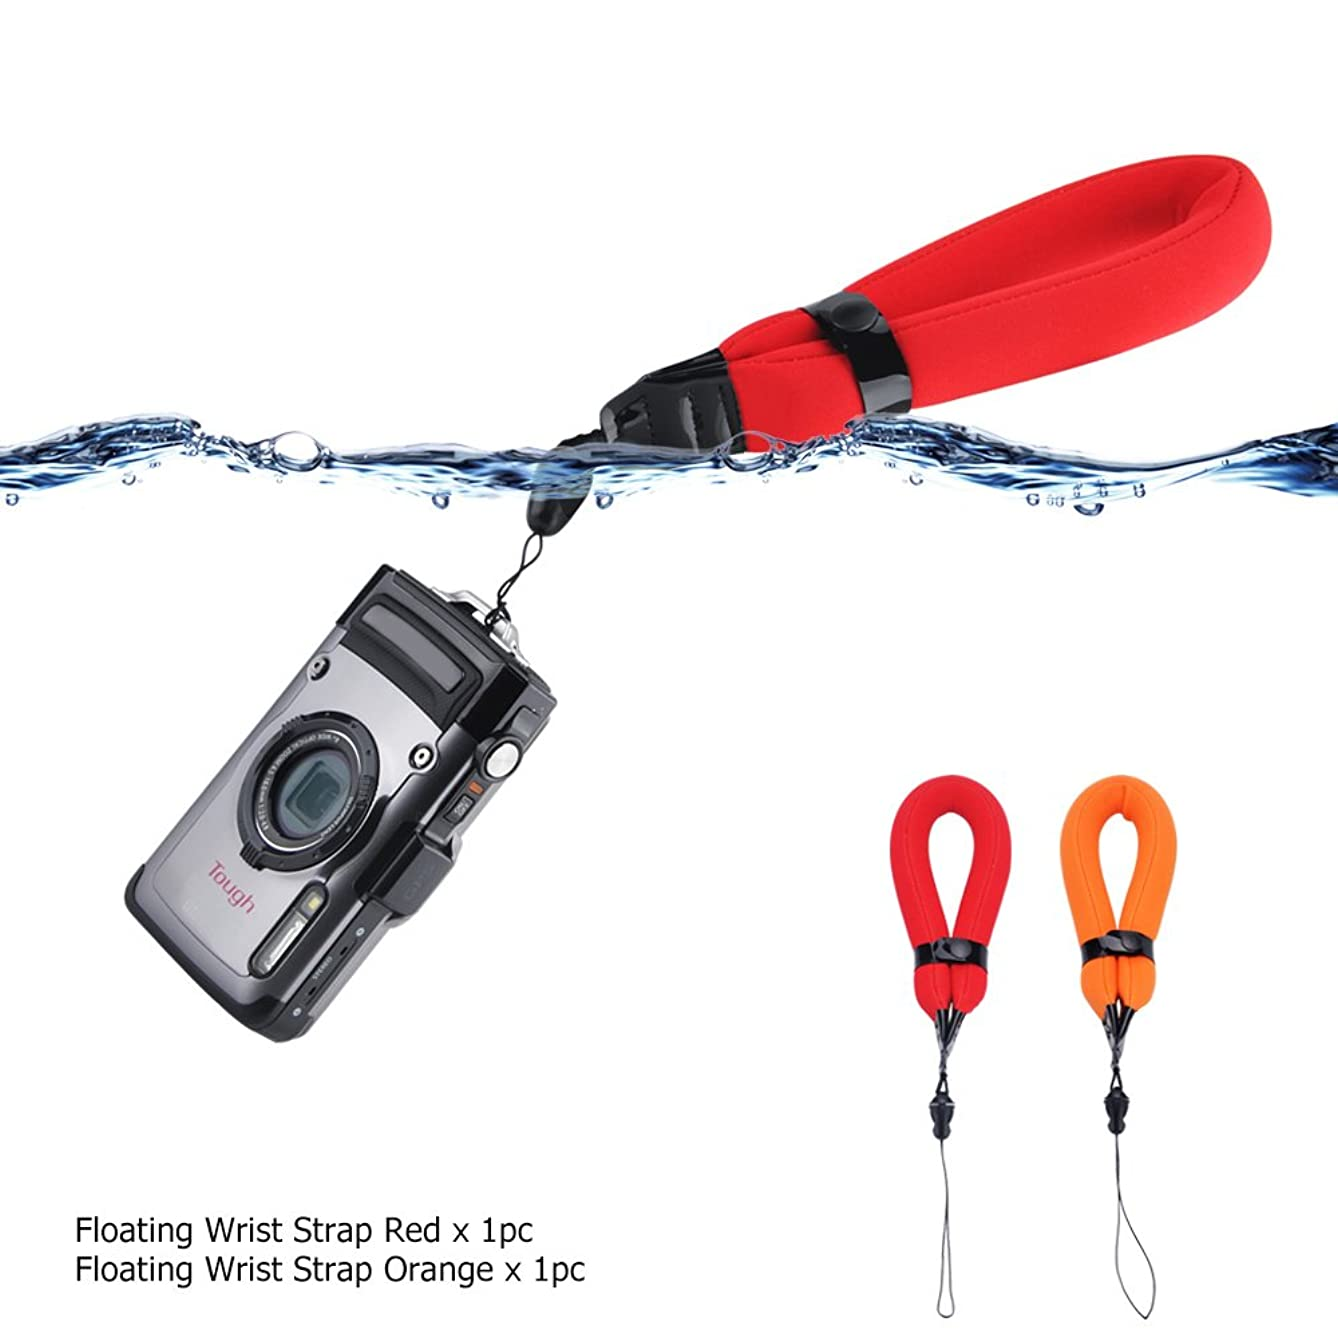 2 Pack Waterproof Camera Float Strap for Olympus TG6 TG5 TG4 TG3 TG2 TG870/Nikon W300 W100 AW120 AW110 AW100/Canon D30 D20/Fujifilm XP140 XP130 XP120 XP90 XP80/GoPro Hero7 Hero6 Hero5/Panasonic TS30